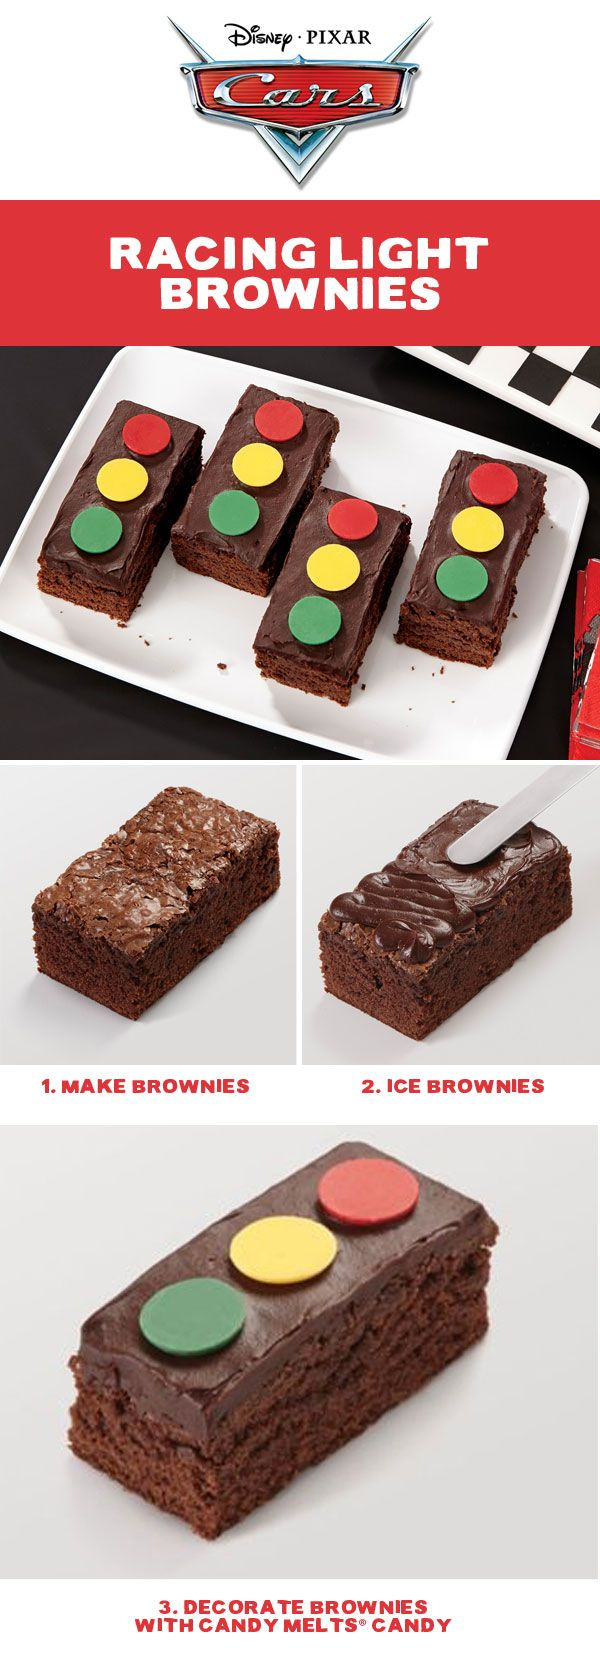 Put these easy-to-make treats out at the Cars birthday party and watch everyone race to grab them! The rich, fudgy brownies are baked in the Sheet Pan and topped with delicious chocolate decorator icing. Best of all, the decorating is easily done with wafers of colorful Wilton Candy Melts® Candy!